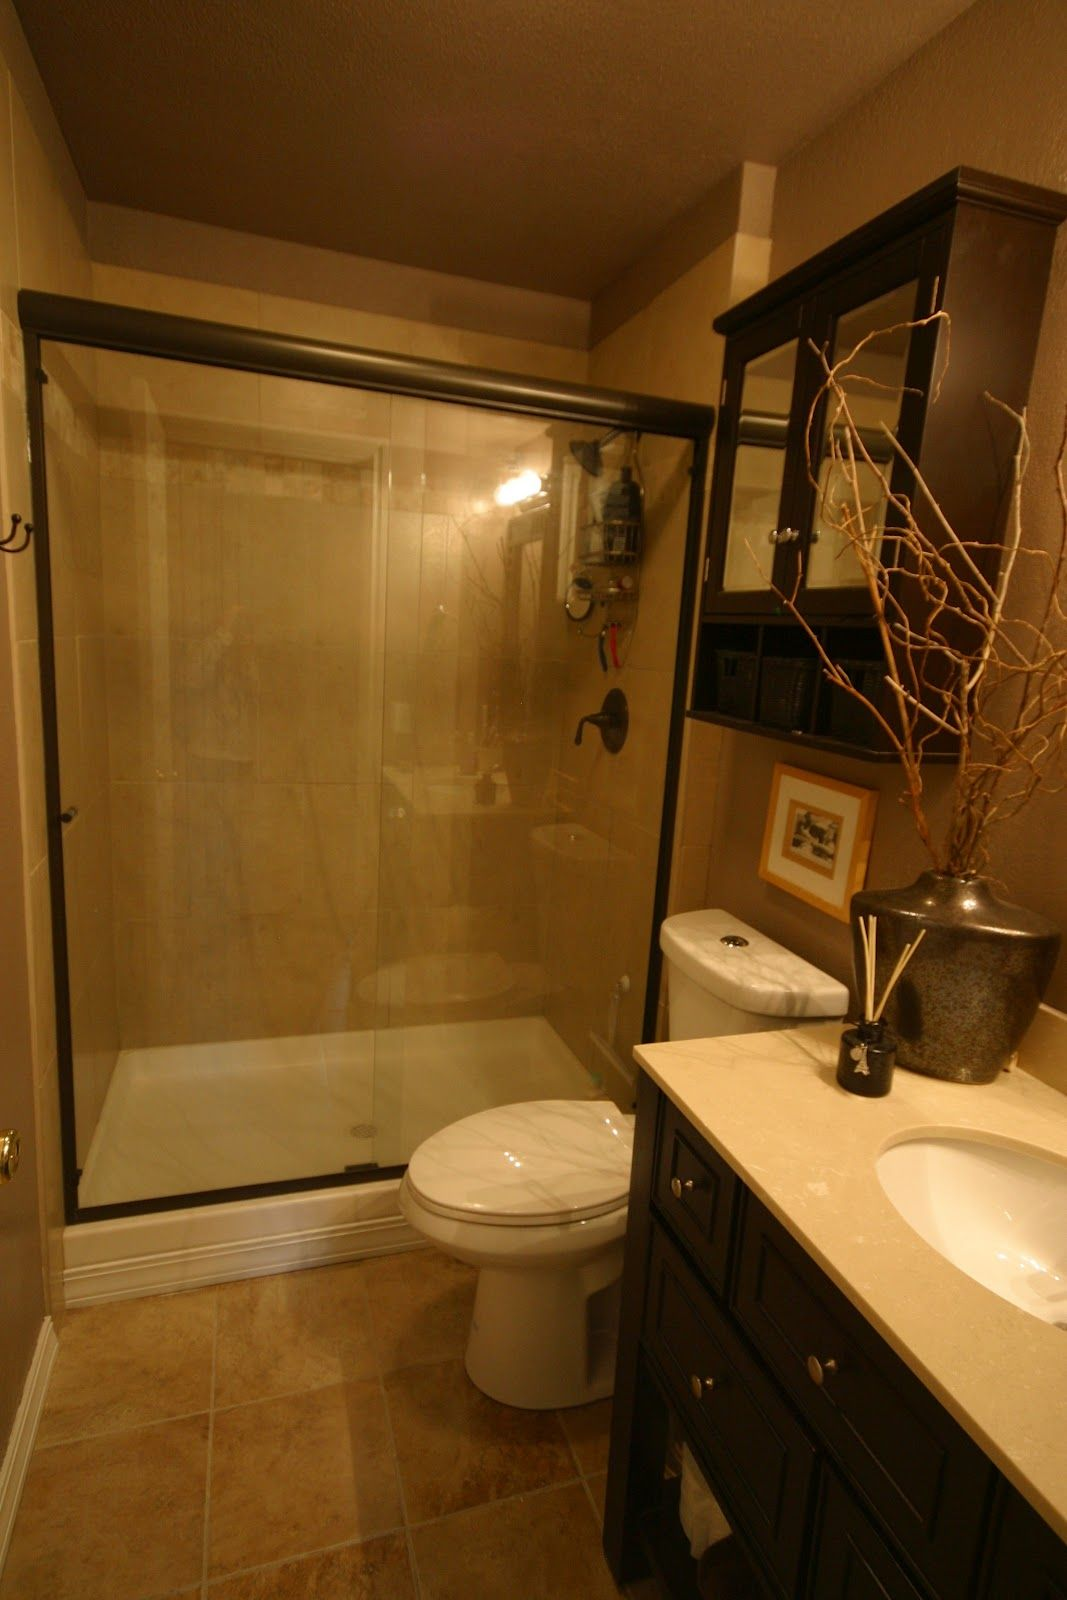 Nice Girls Rule Nice Girl Small Budget Bathroom Remodel Before - Budget bathroom remodel before and after